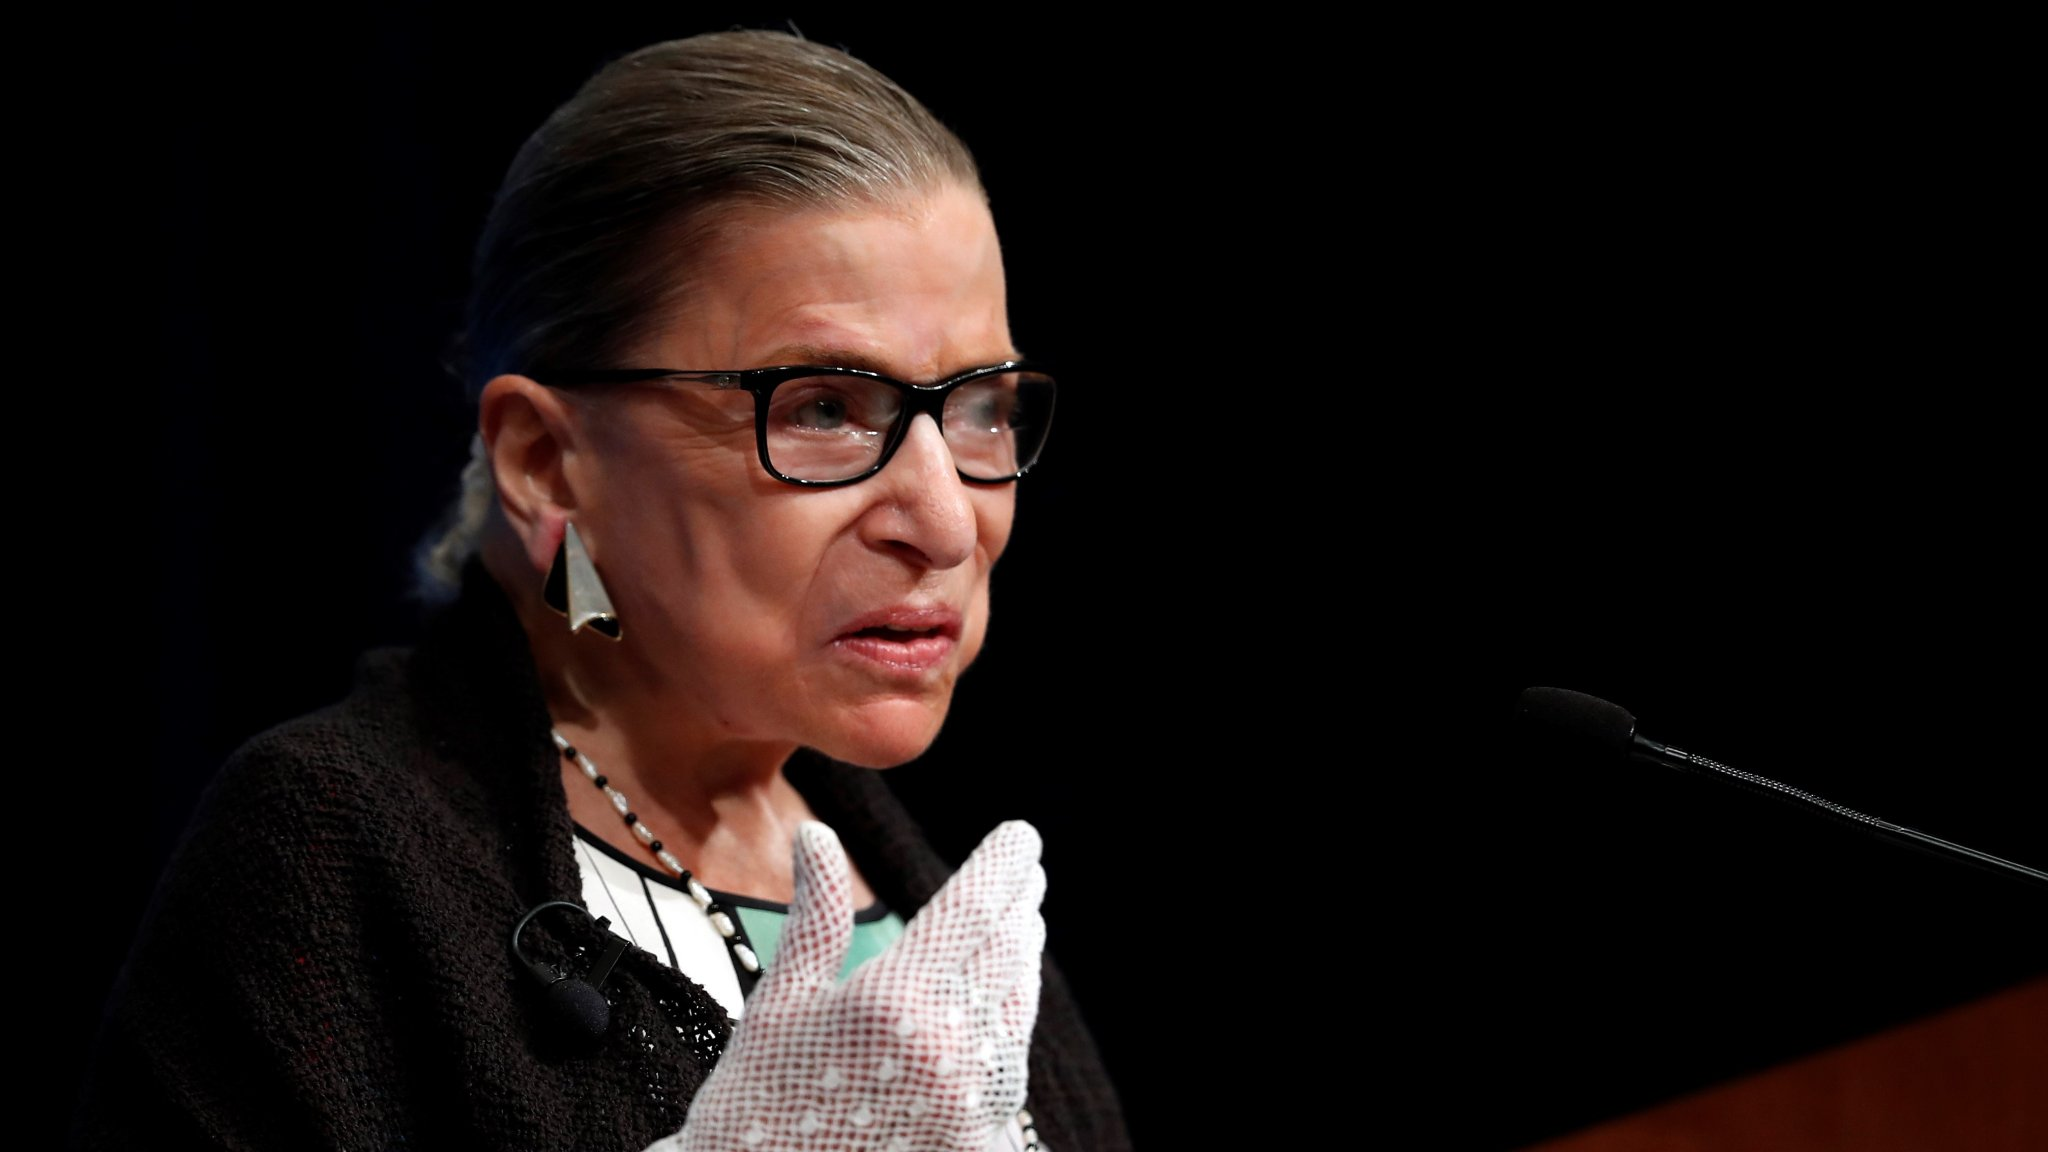 Ruth Bader Ginsburg warned against court packing